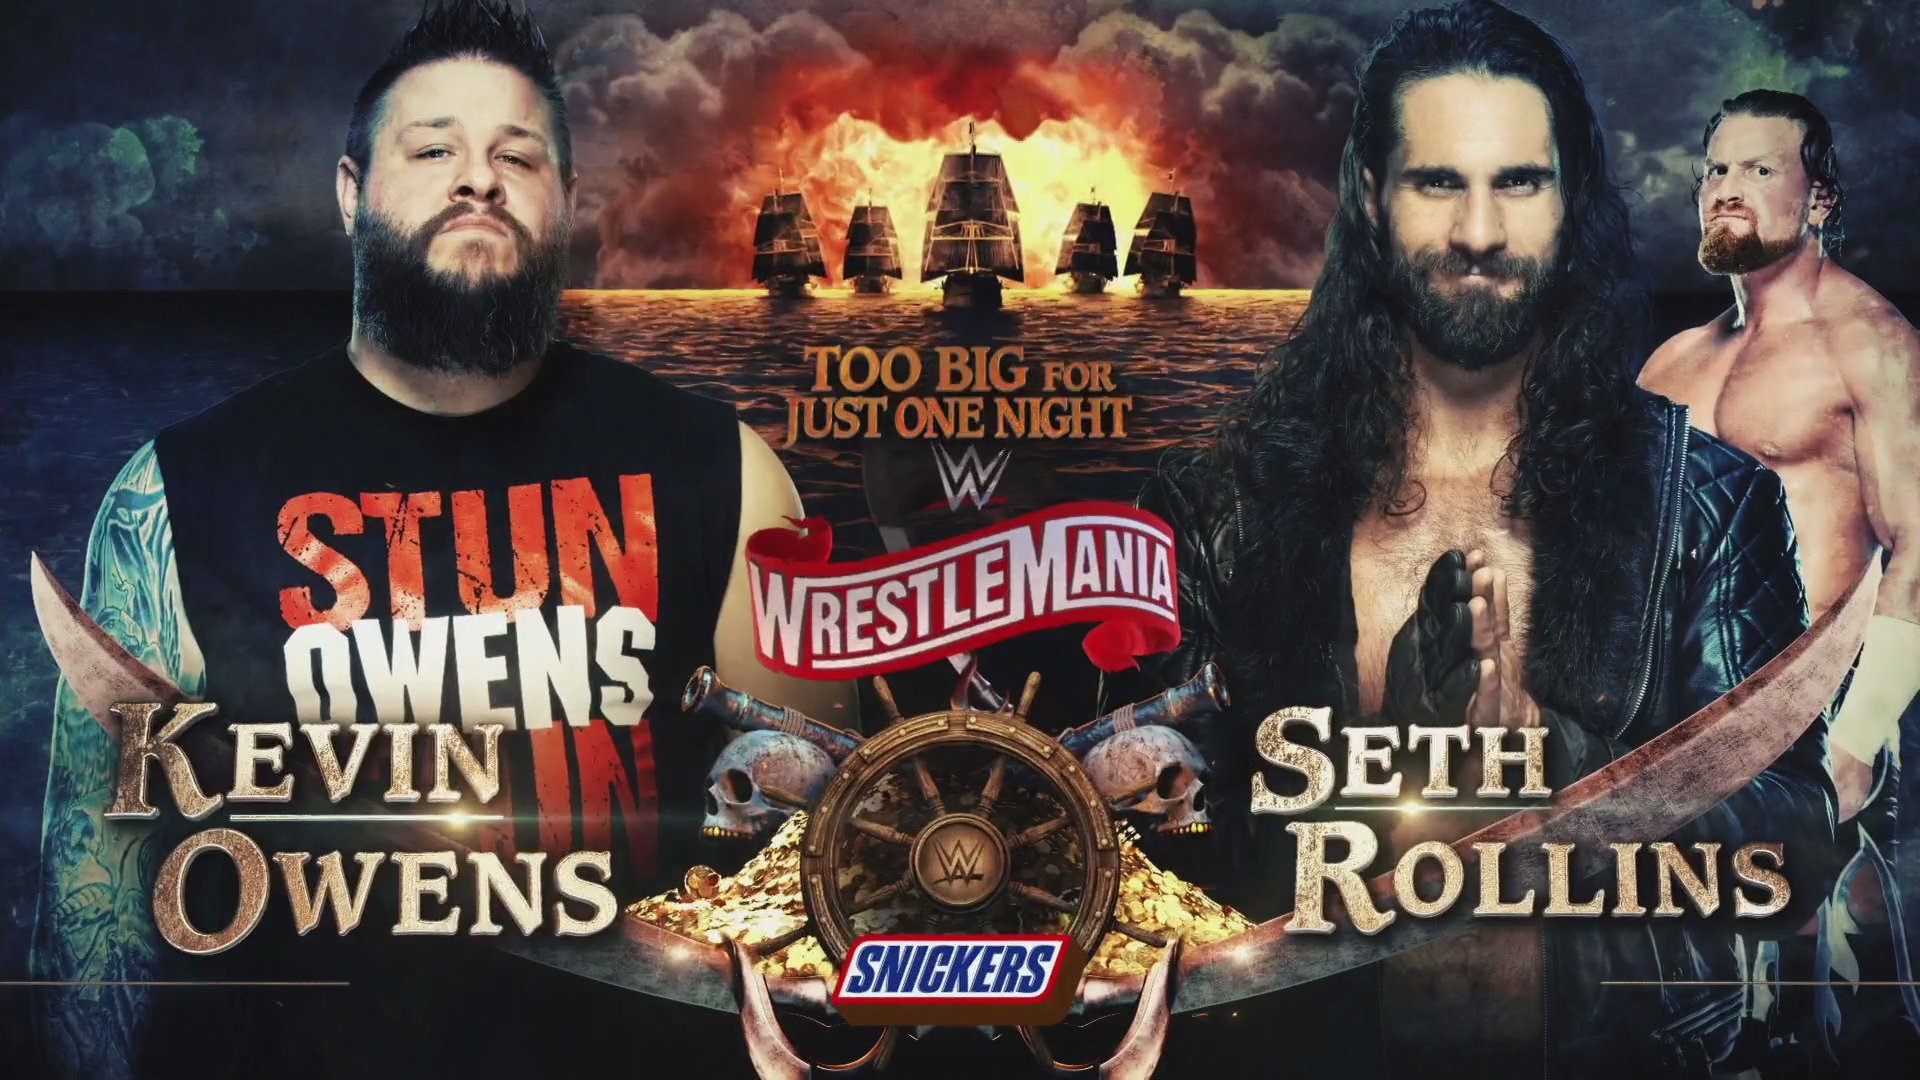 WWE To Film Two Endings For Wrestlemania 36 Matches FOR THIS REASON 2